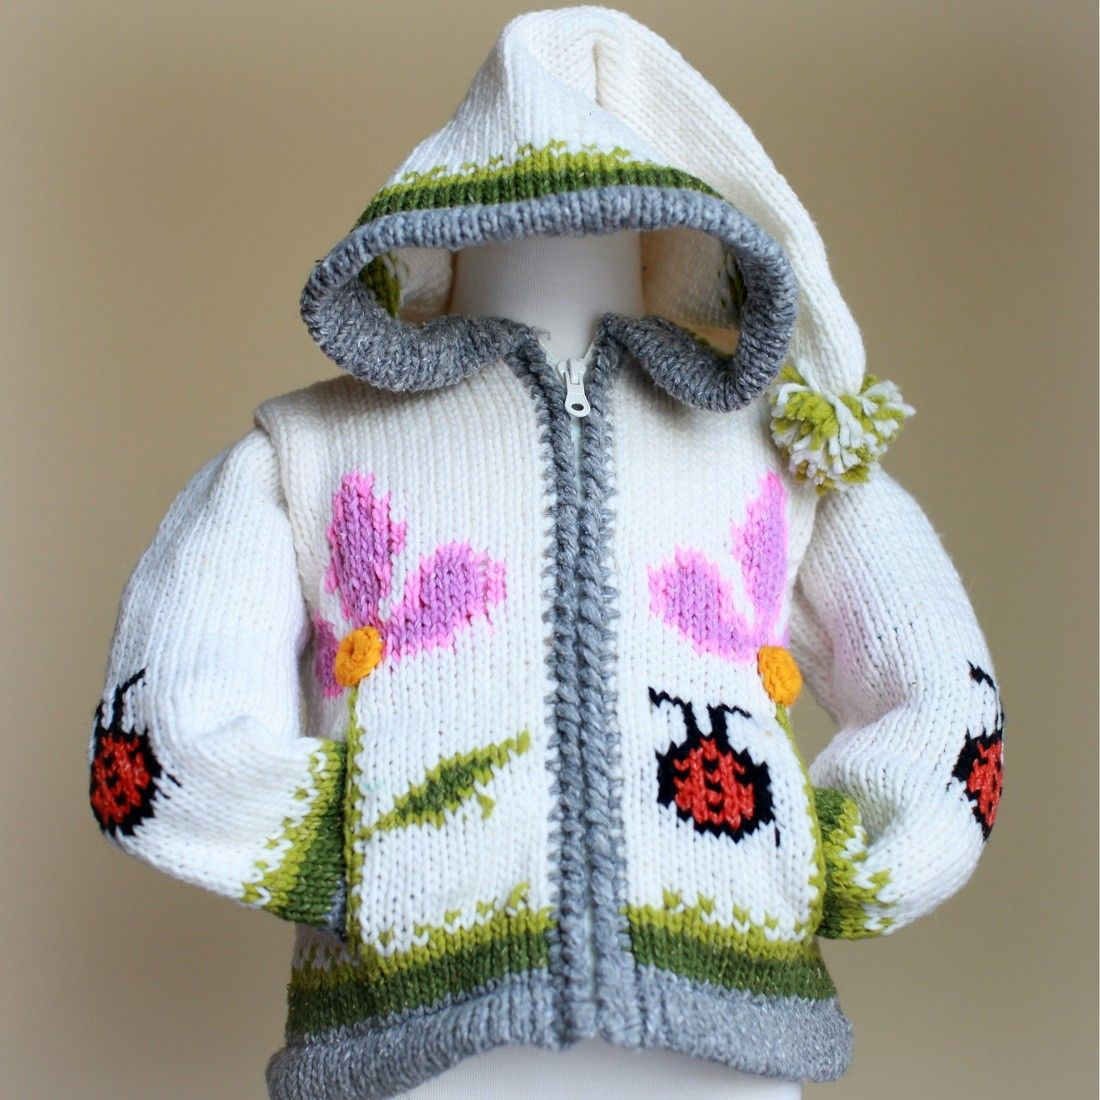 Floral Ladybug Sweater - With the two tone flowers and the grassy bottom, this sweet sweater will make your little one feel like she's in a sunny flower garden even on the gloomiest of days!